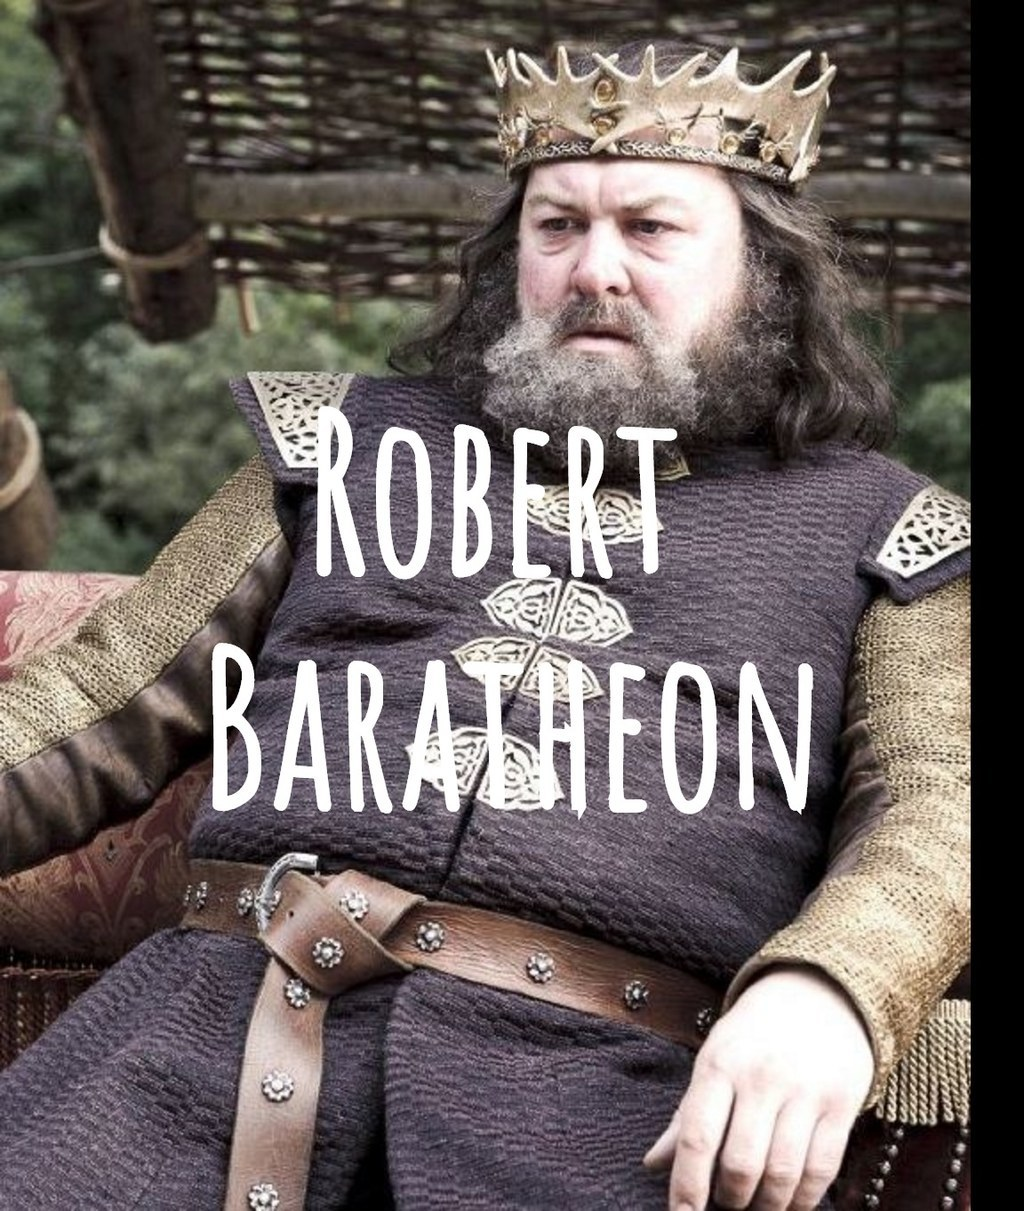 Robert Baratheon: What Hogwarts House Do These Game Of Thrones Characters